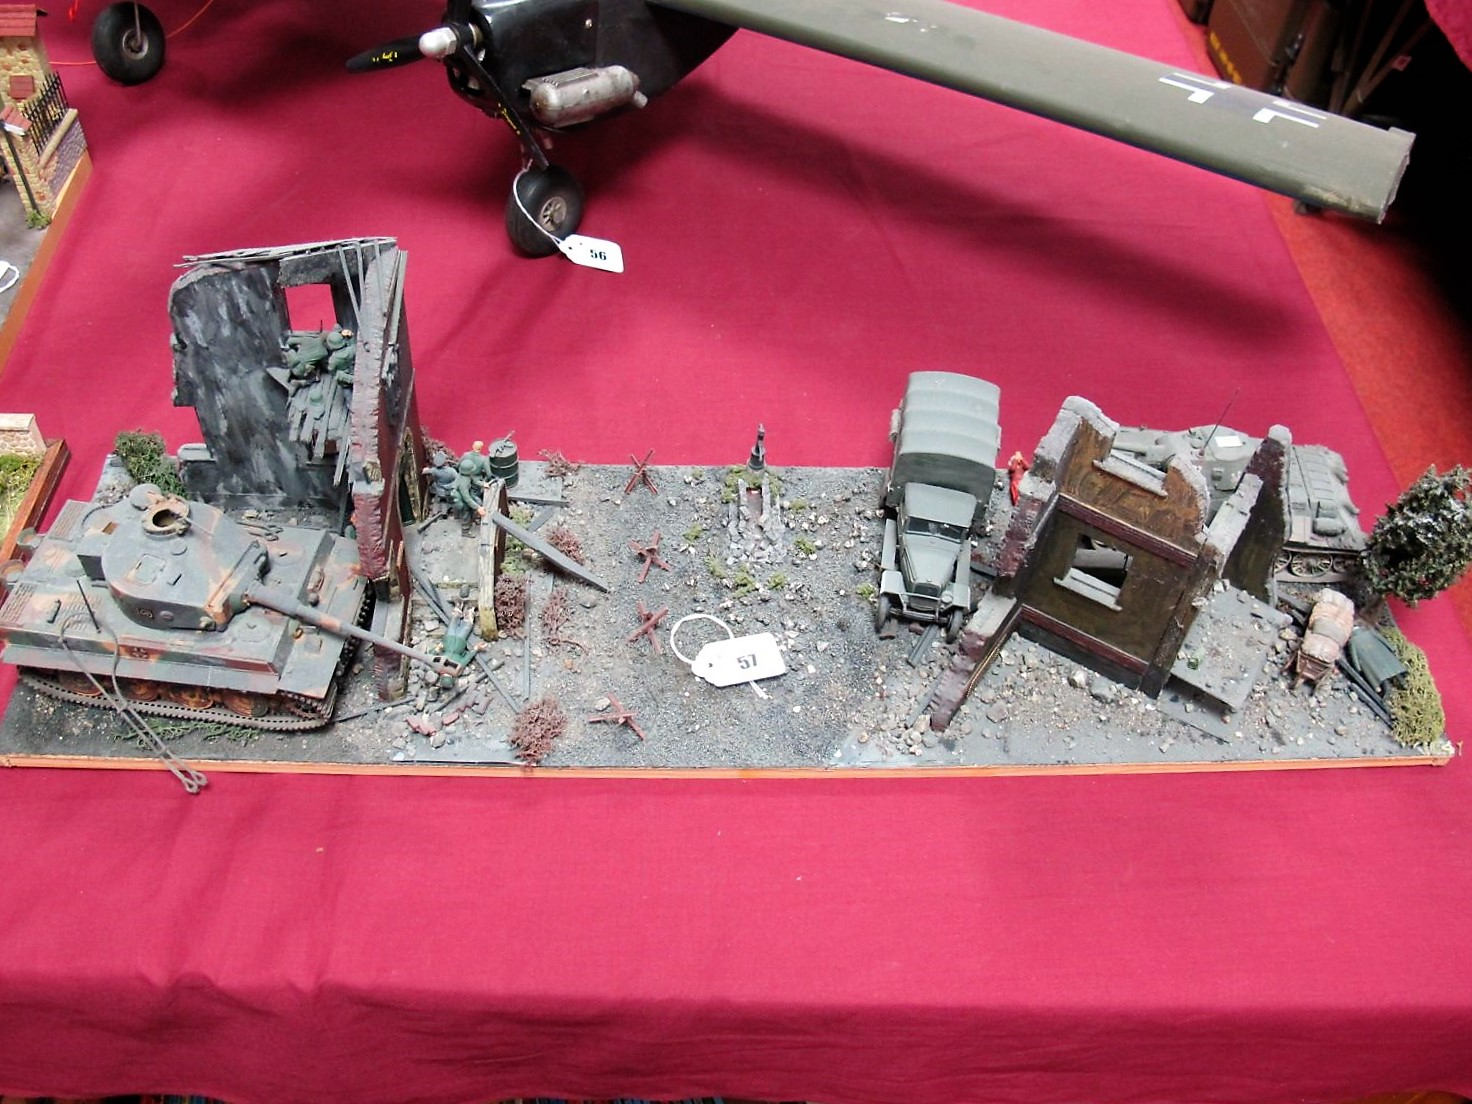 Lot 57 - A Highly Detailed and Very Well Built Second World War Diorama, depicting German and Russian tanks